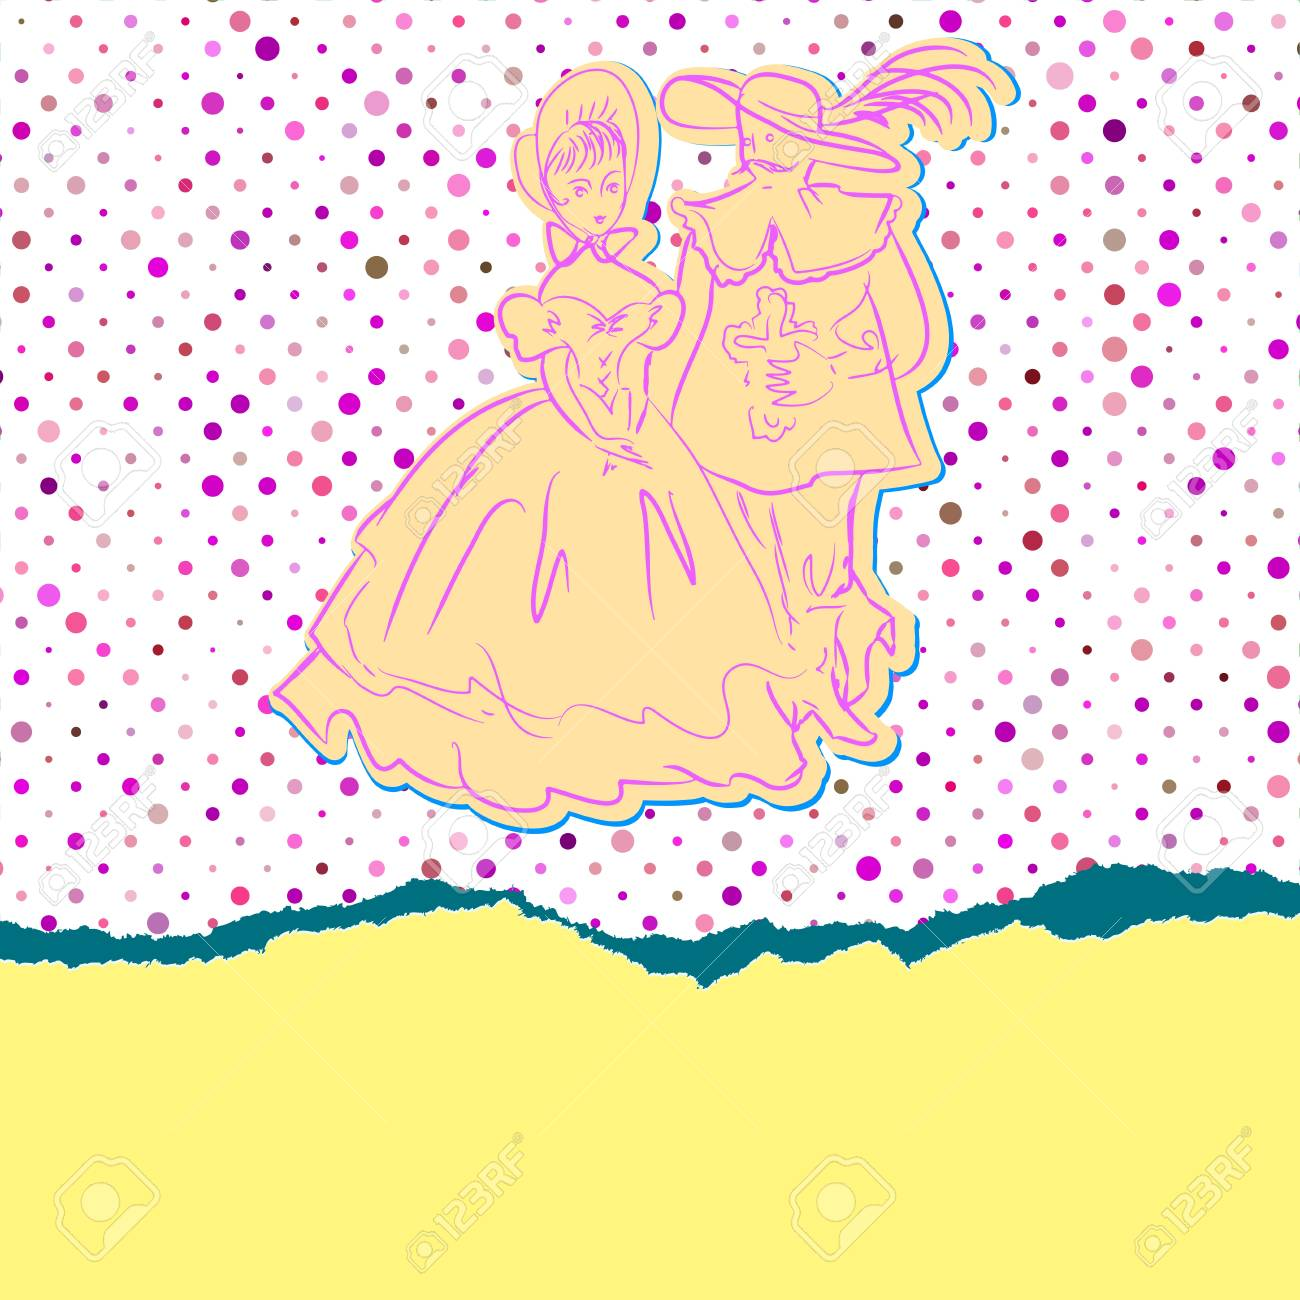 Romantic girl with man, card for events Stock Vector - 18513930